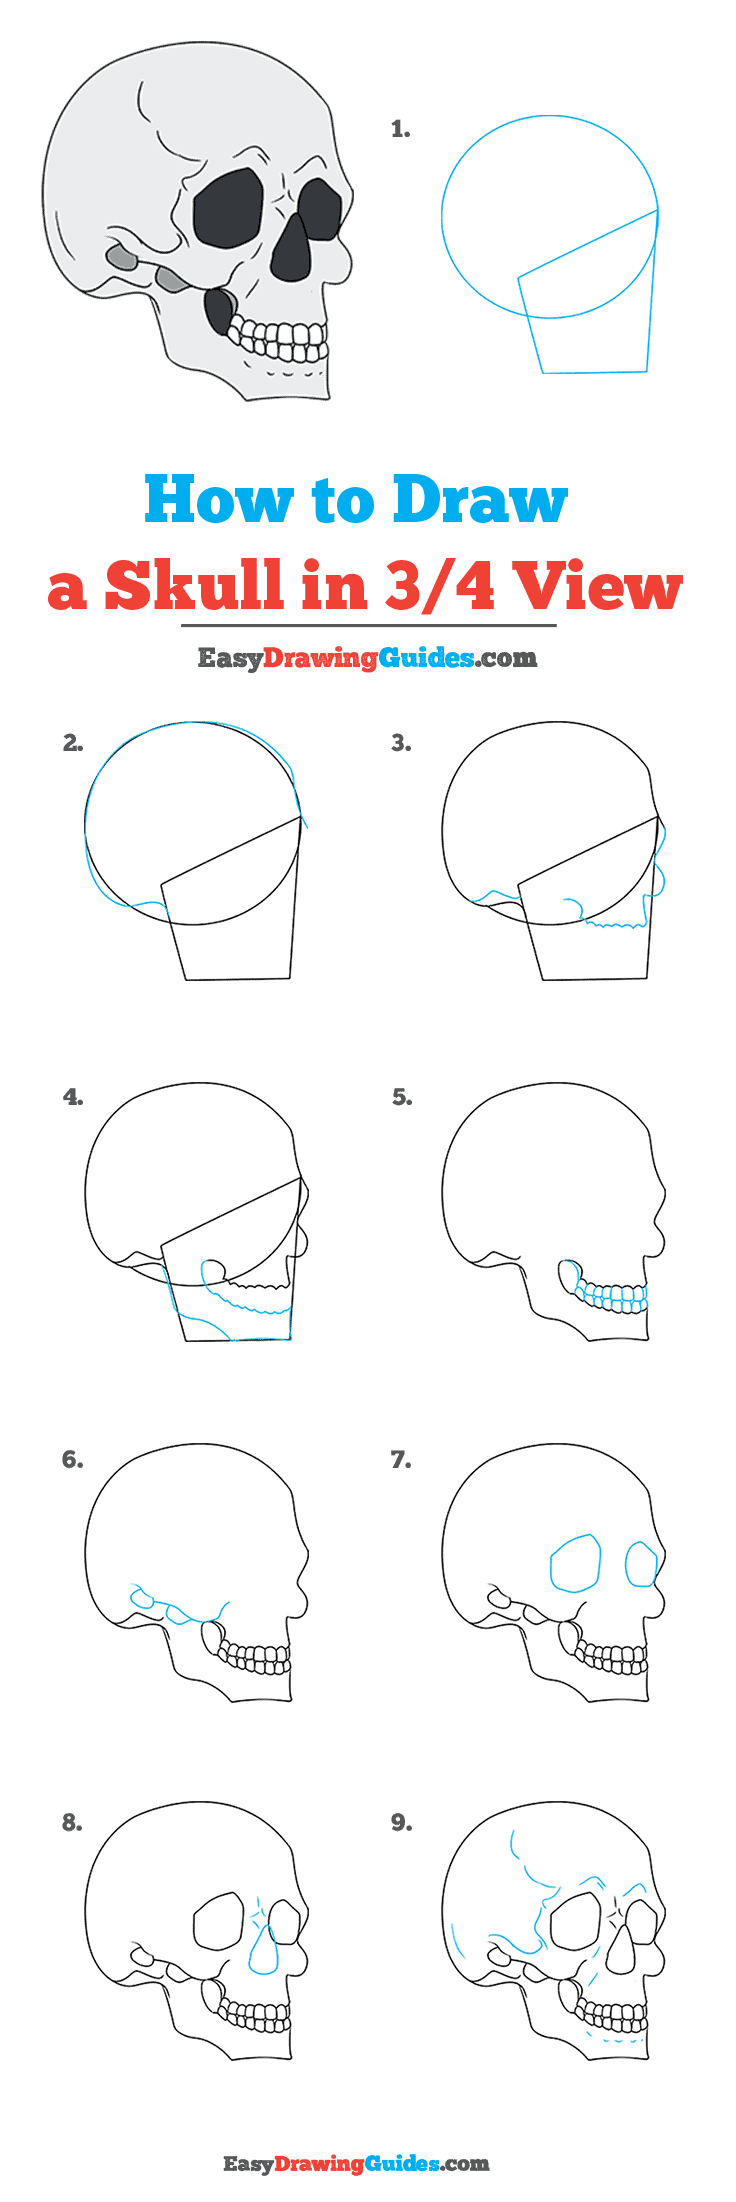 How to Draw Skull in 3/4 View